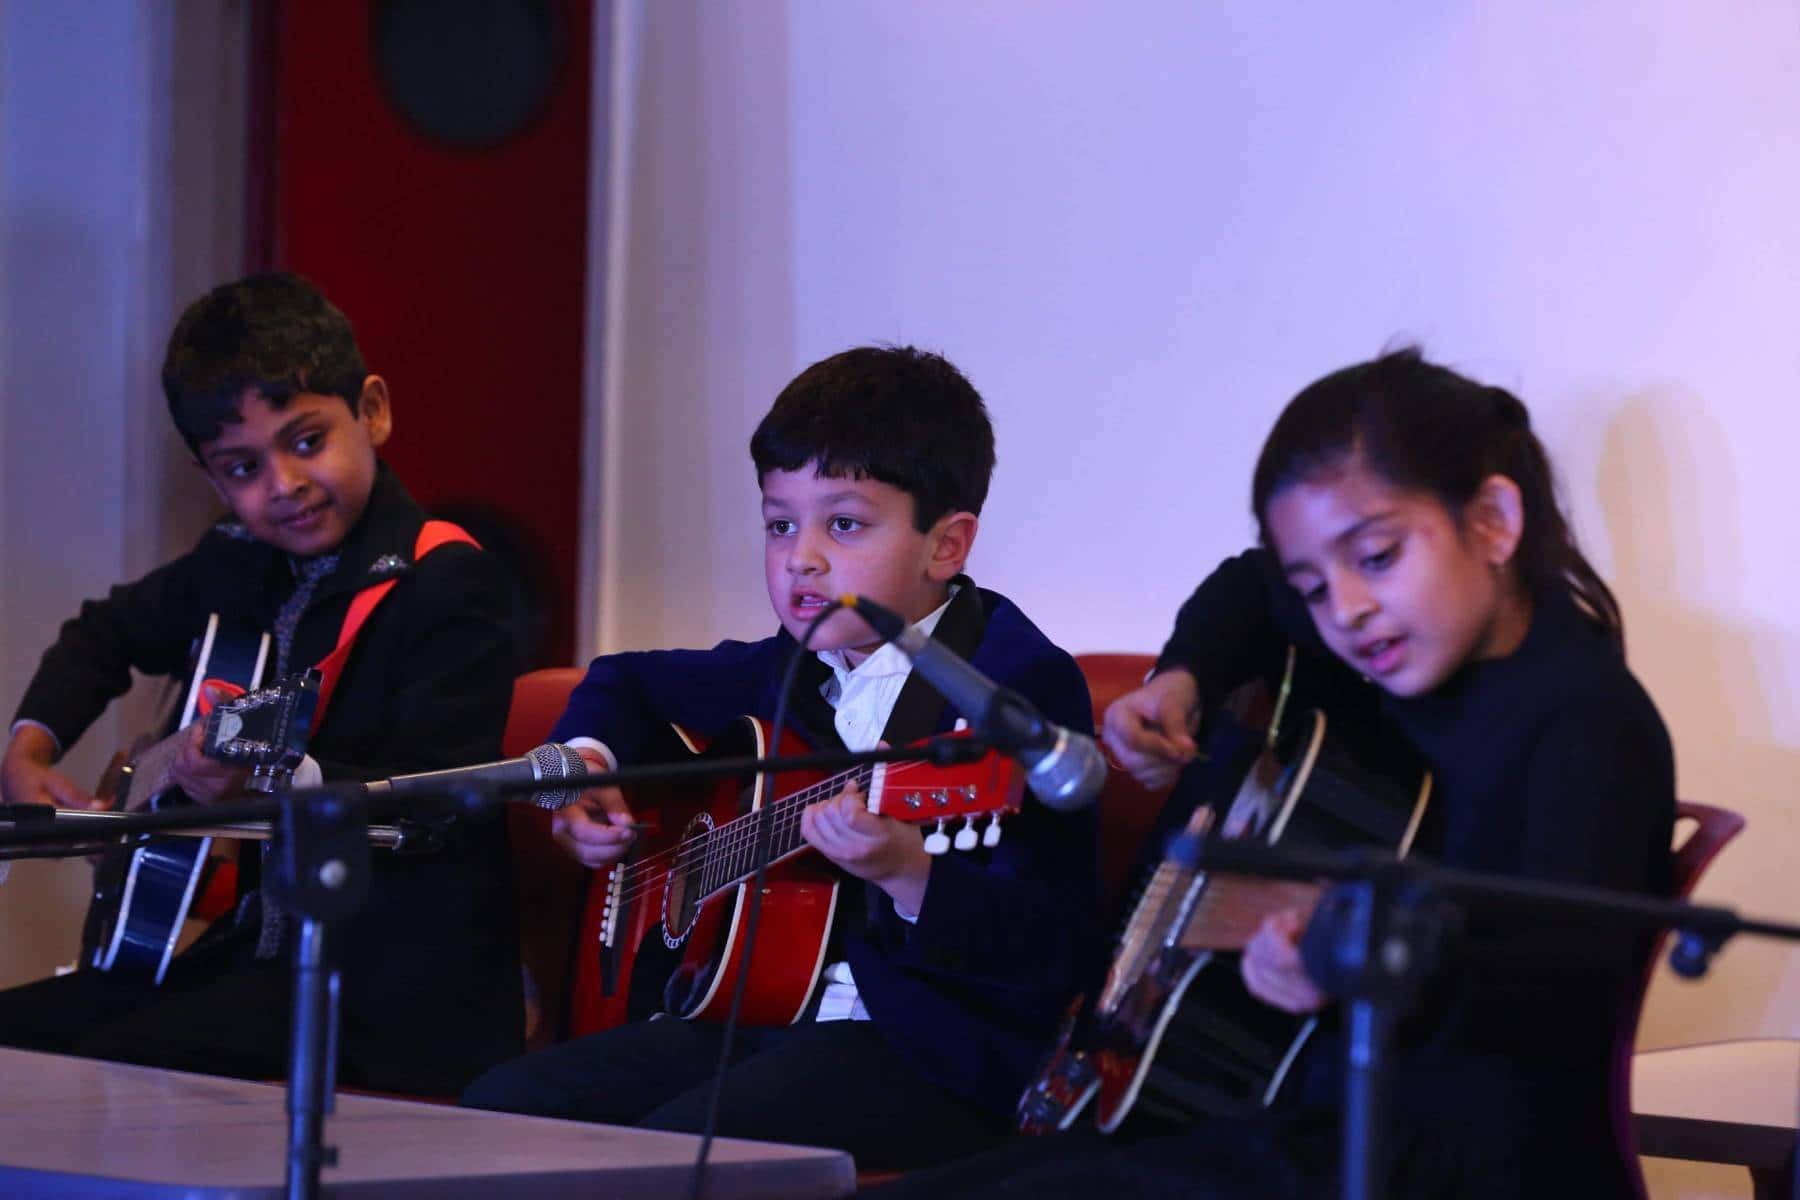 Learn to Play Guitar,Keyboard,Casio,Piano,Singing, Music,Indian and Western in Delhi Vasant Kunj,Vasant Vihar and Gurgaon South city 1 Sector 41 and South City 2 Sohna Road Sector 49.